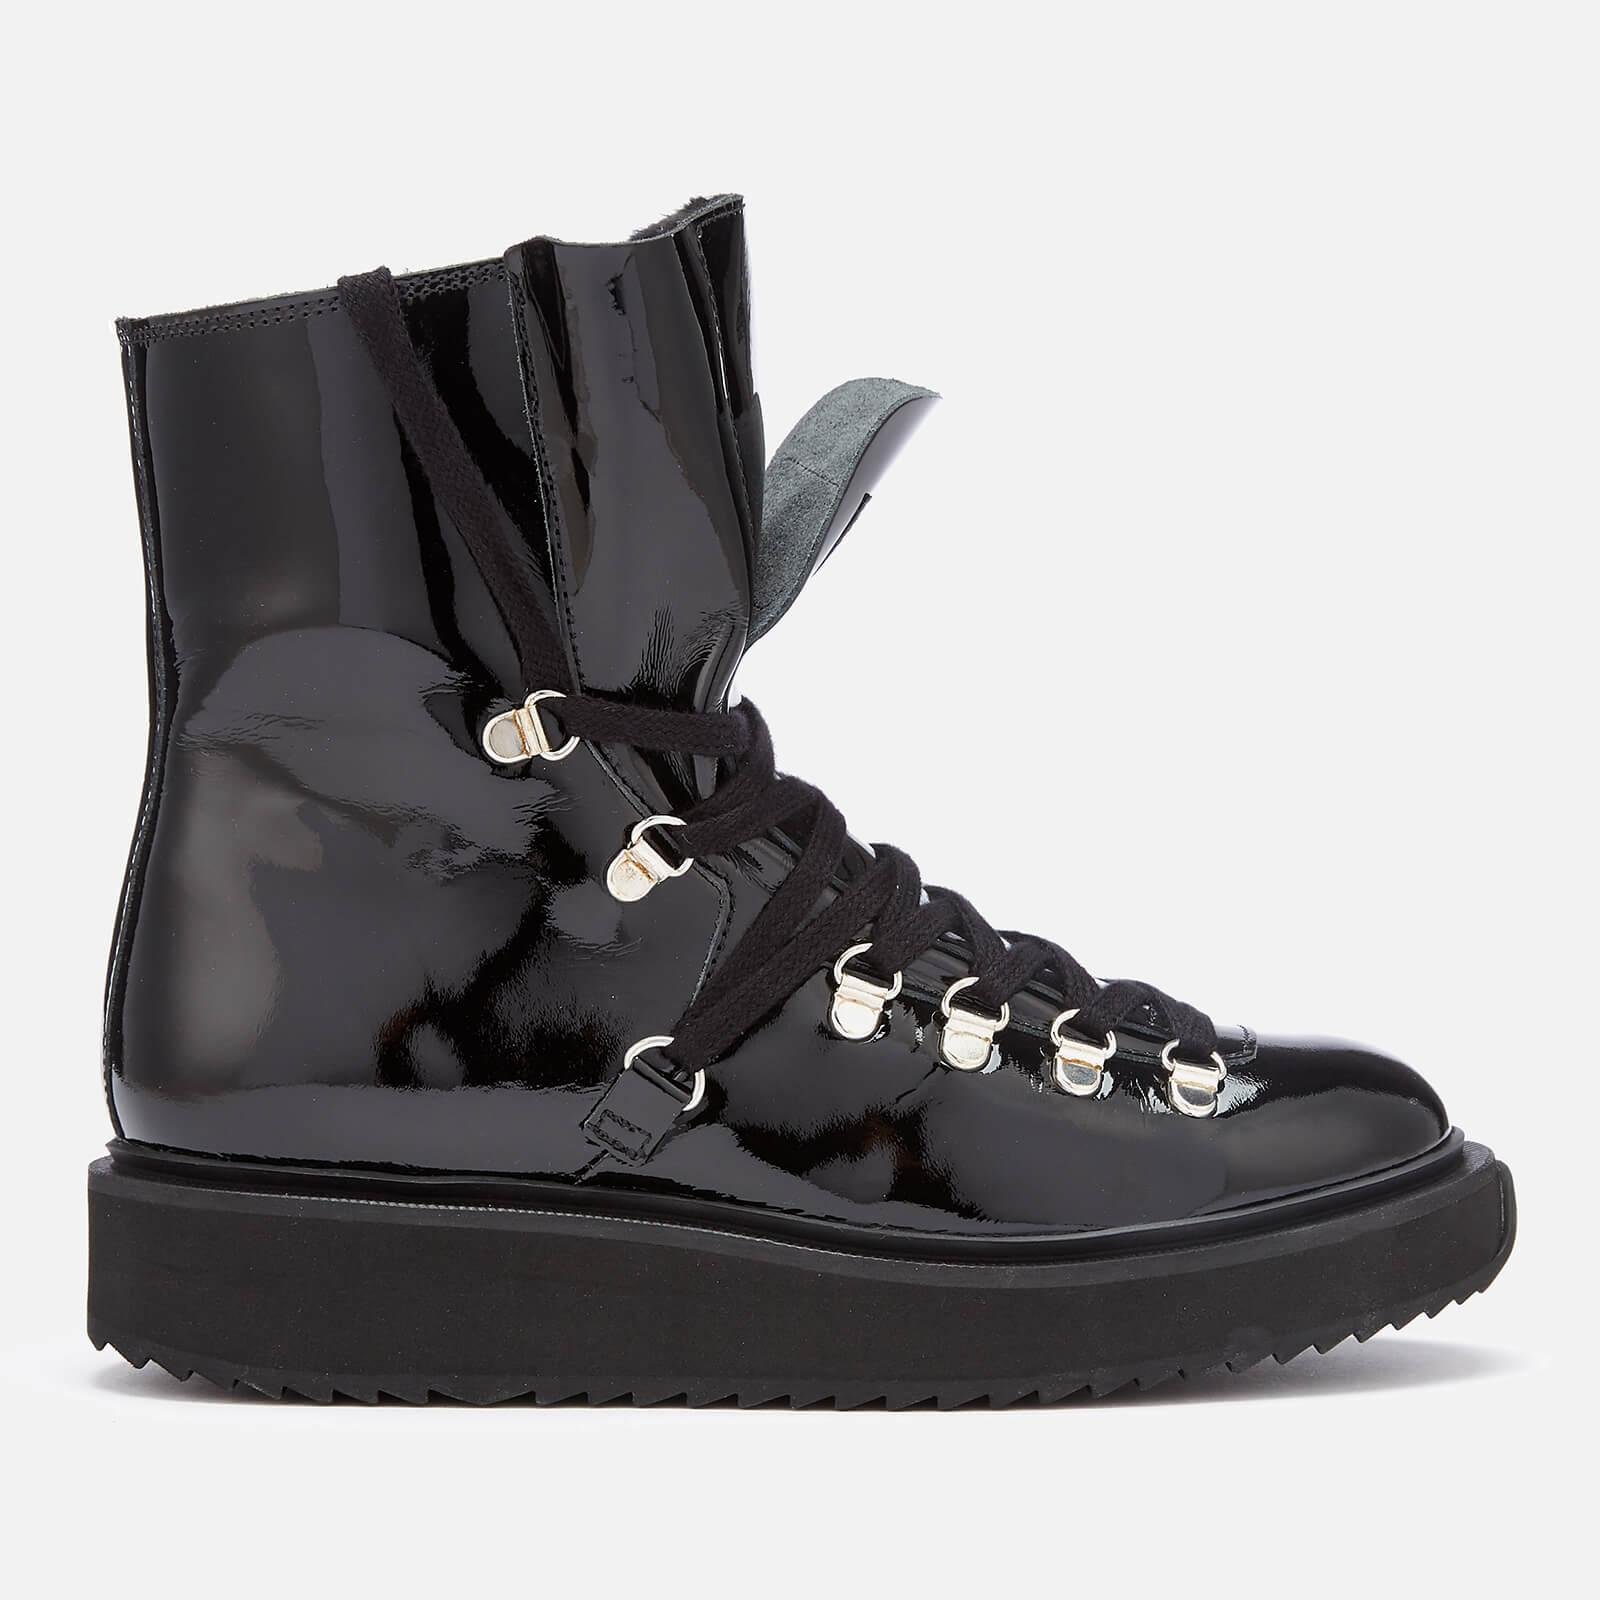 627ff0122ffc Lyst - KENZO Alaska Patent Leather Boots in Black - Save 31%